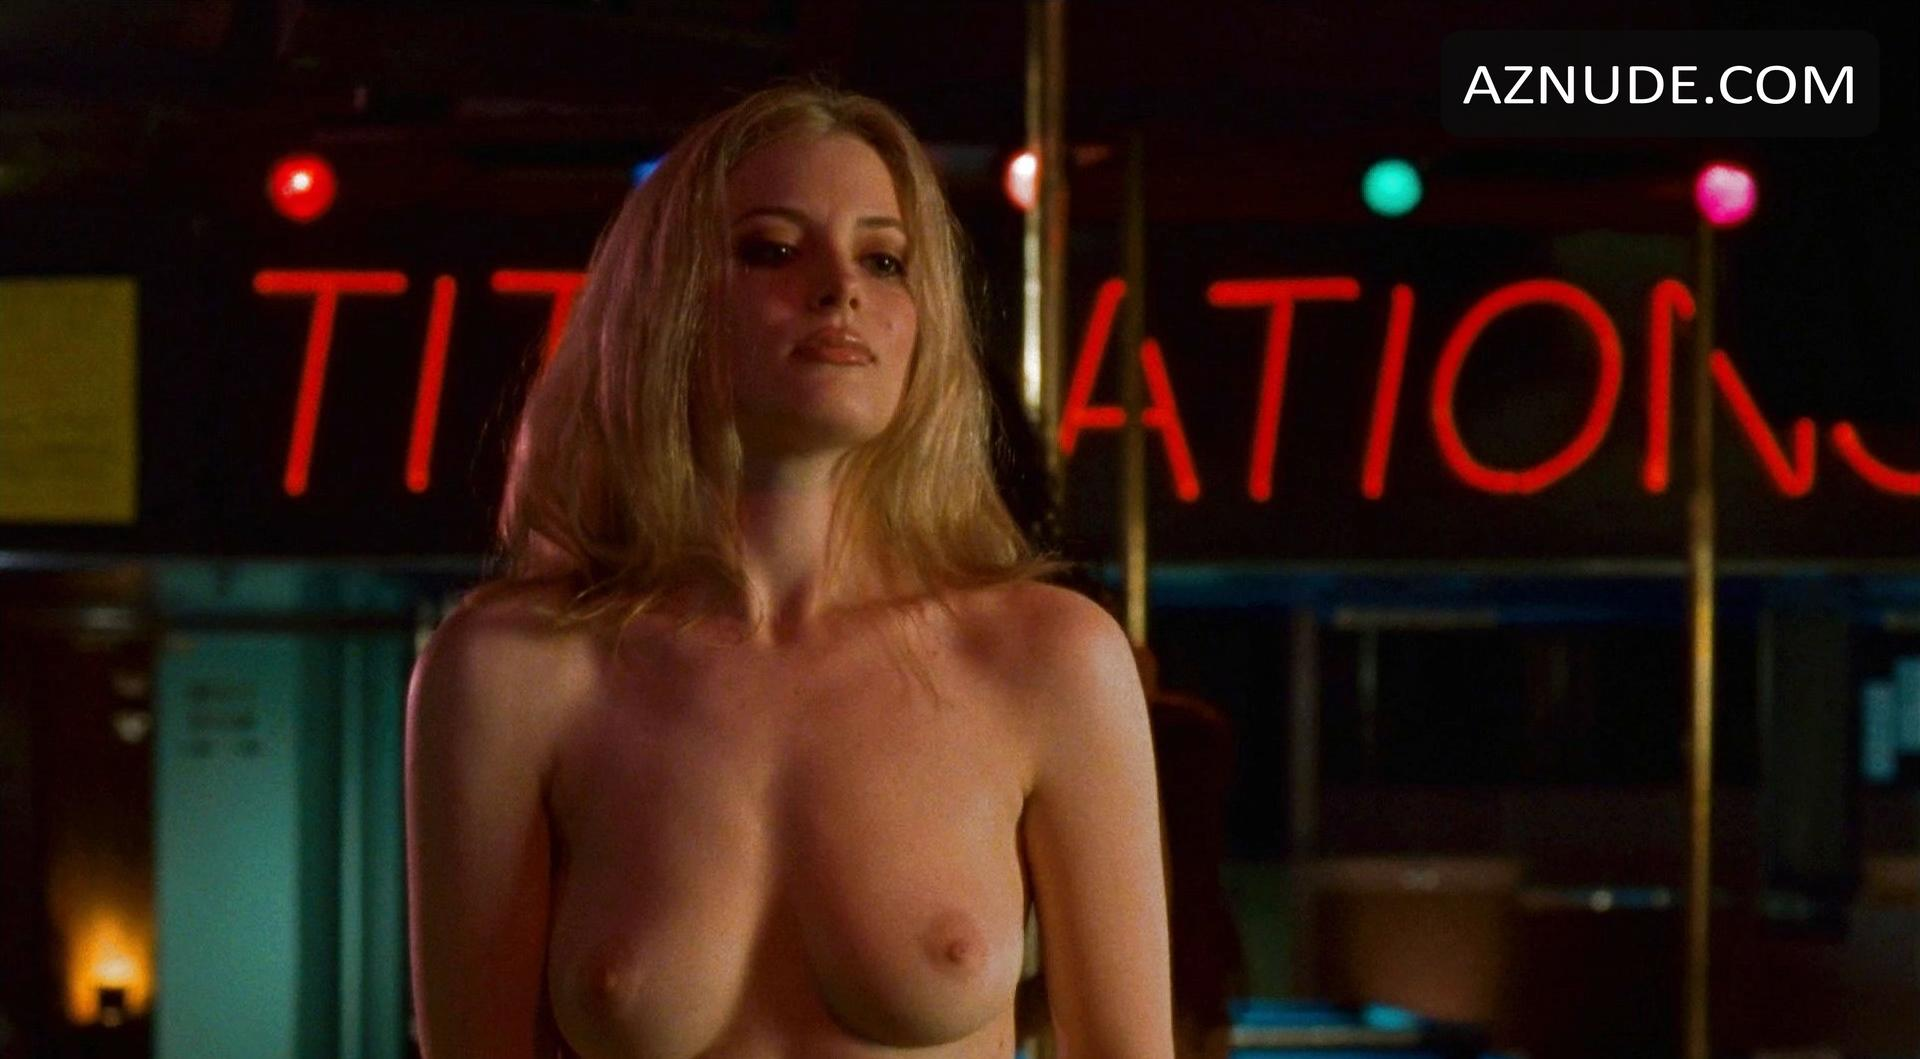 Free streaming porn free streaming movies